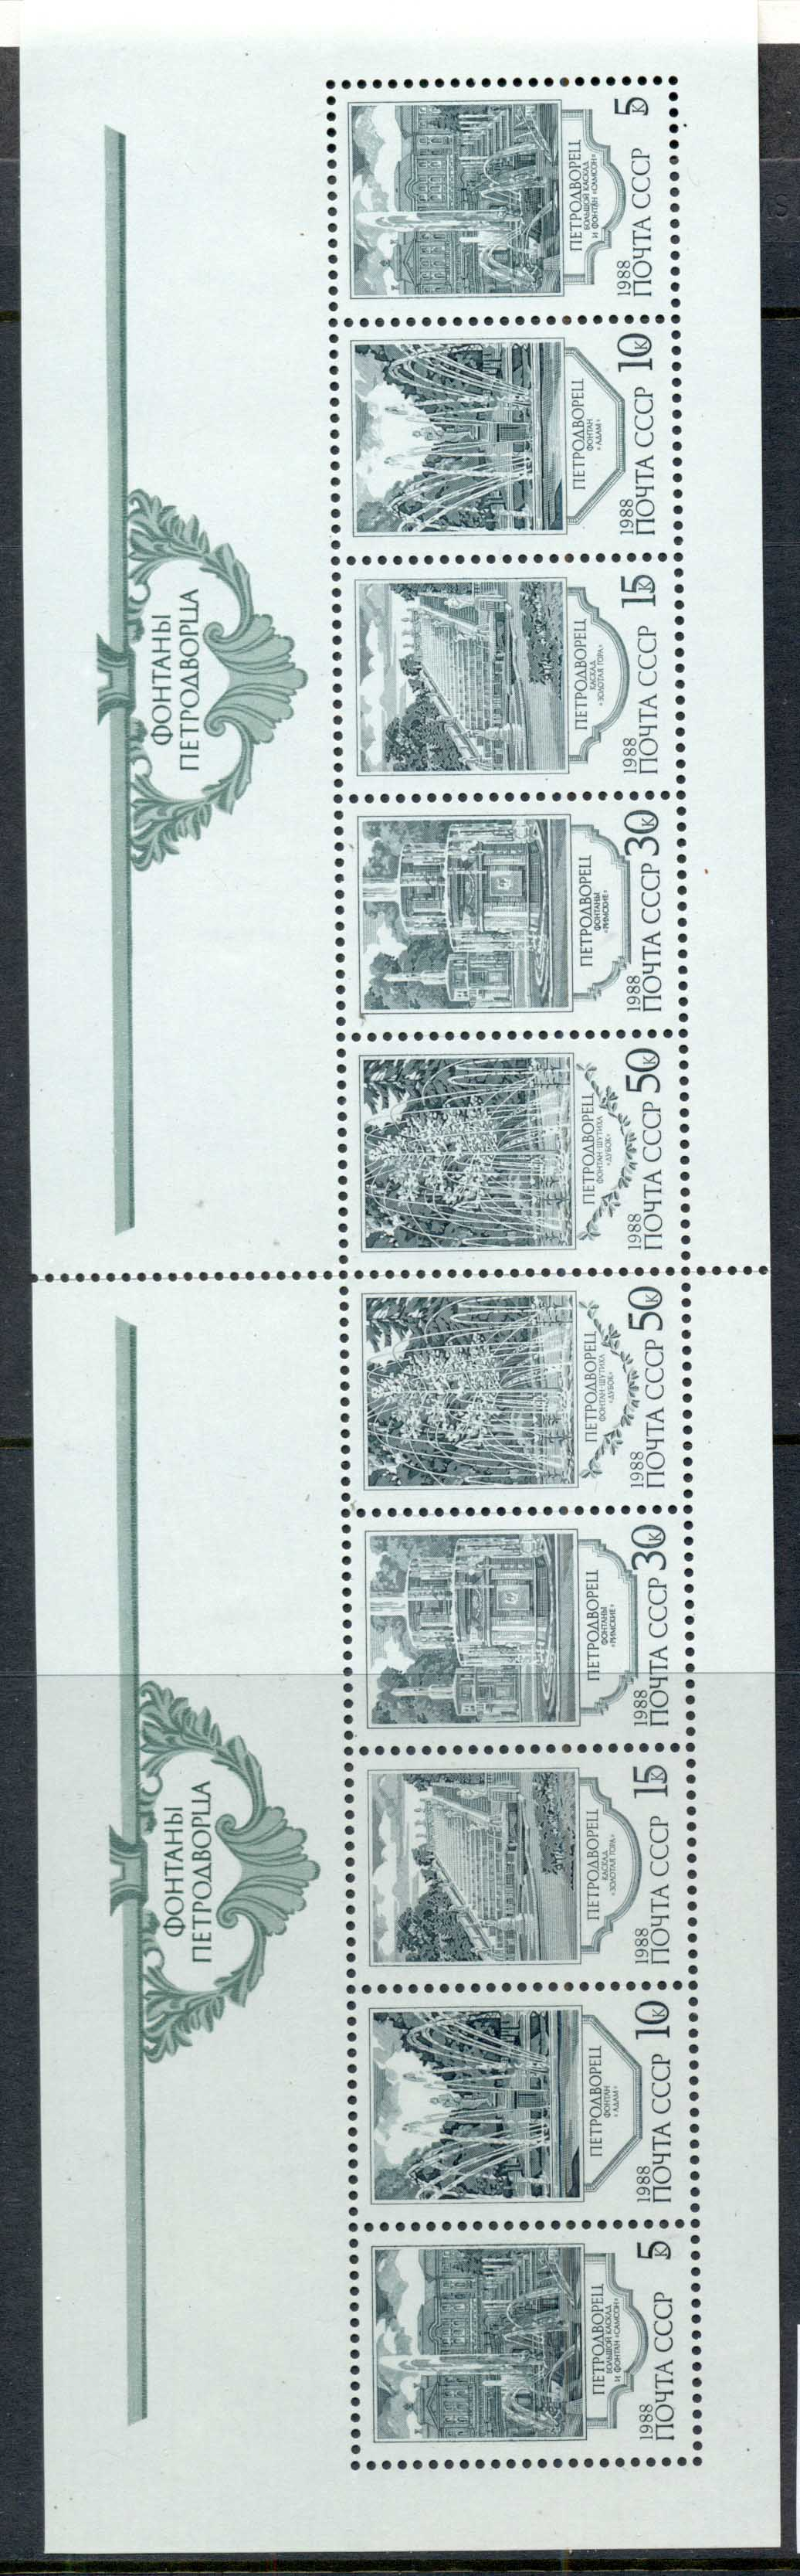 Russia 1988 Fountains of Petrodovortes (folded) 2 panes sheetlet MUH